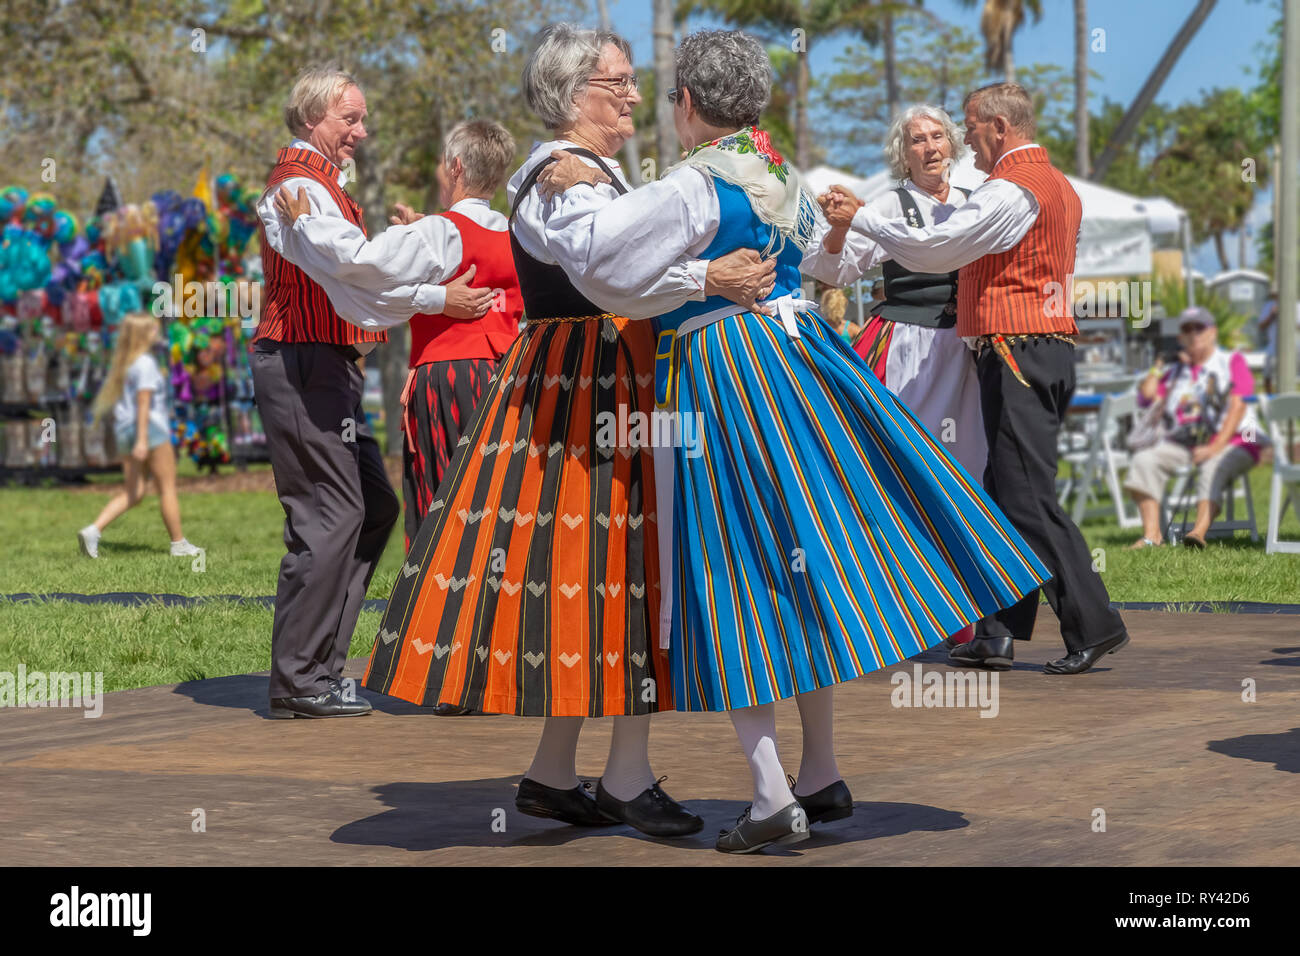 Lake Worth, Florida, USA March 3, 2019,​ Midnight Sun Festival Celebrating Finnish Culture. Two women dance together dressed in Finnish costume. - Stock Image